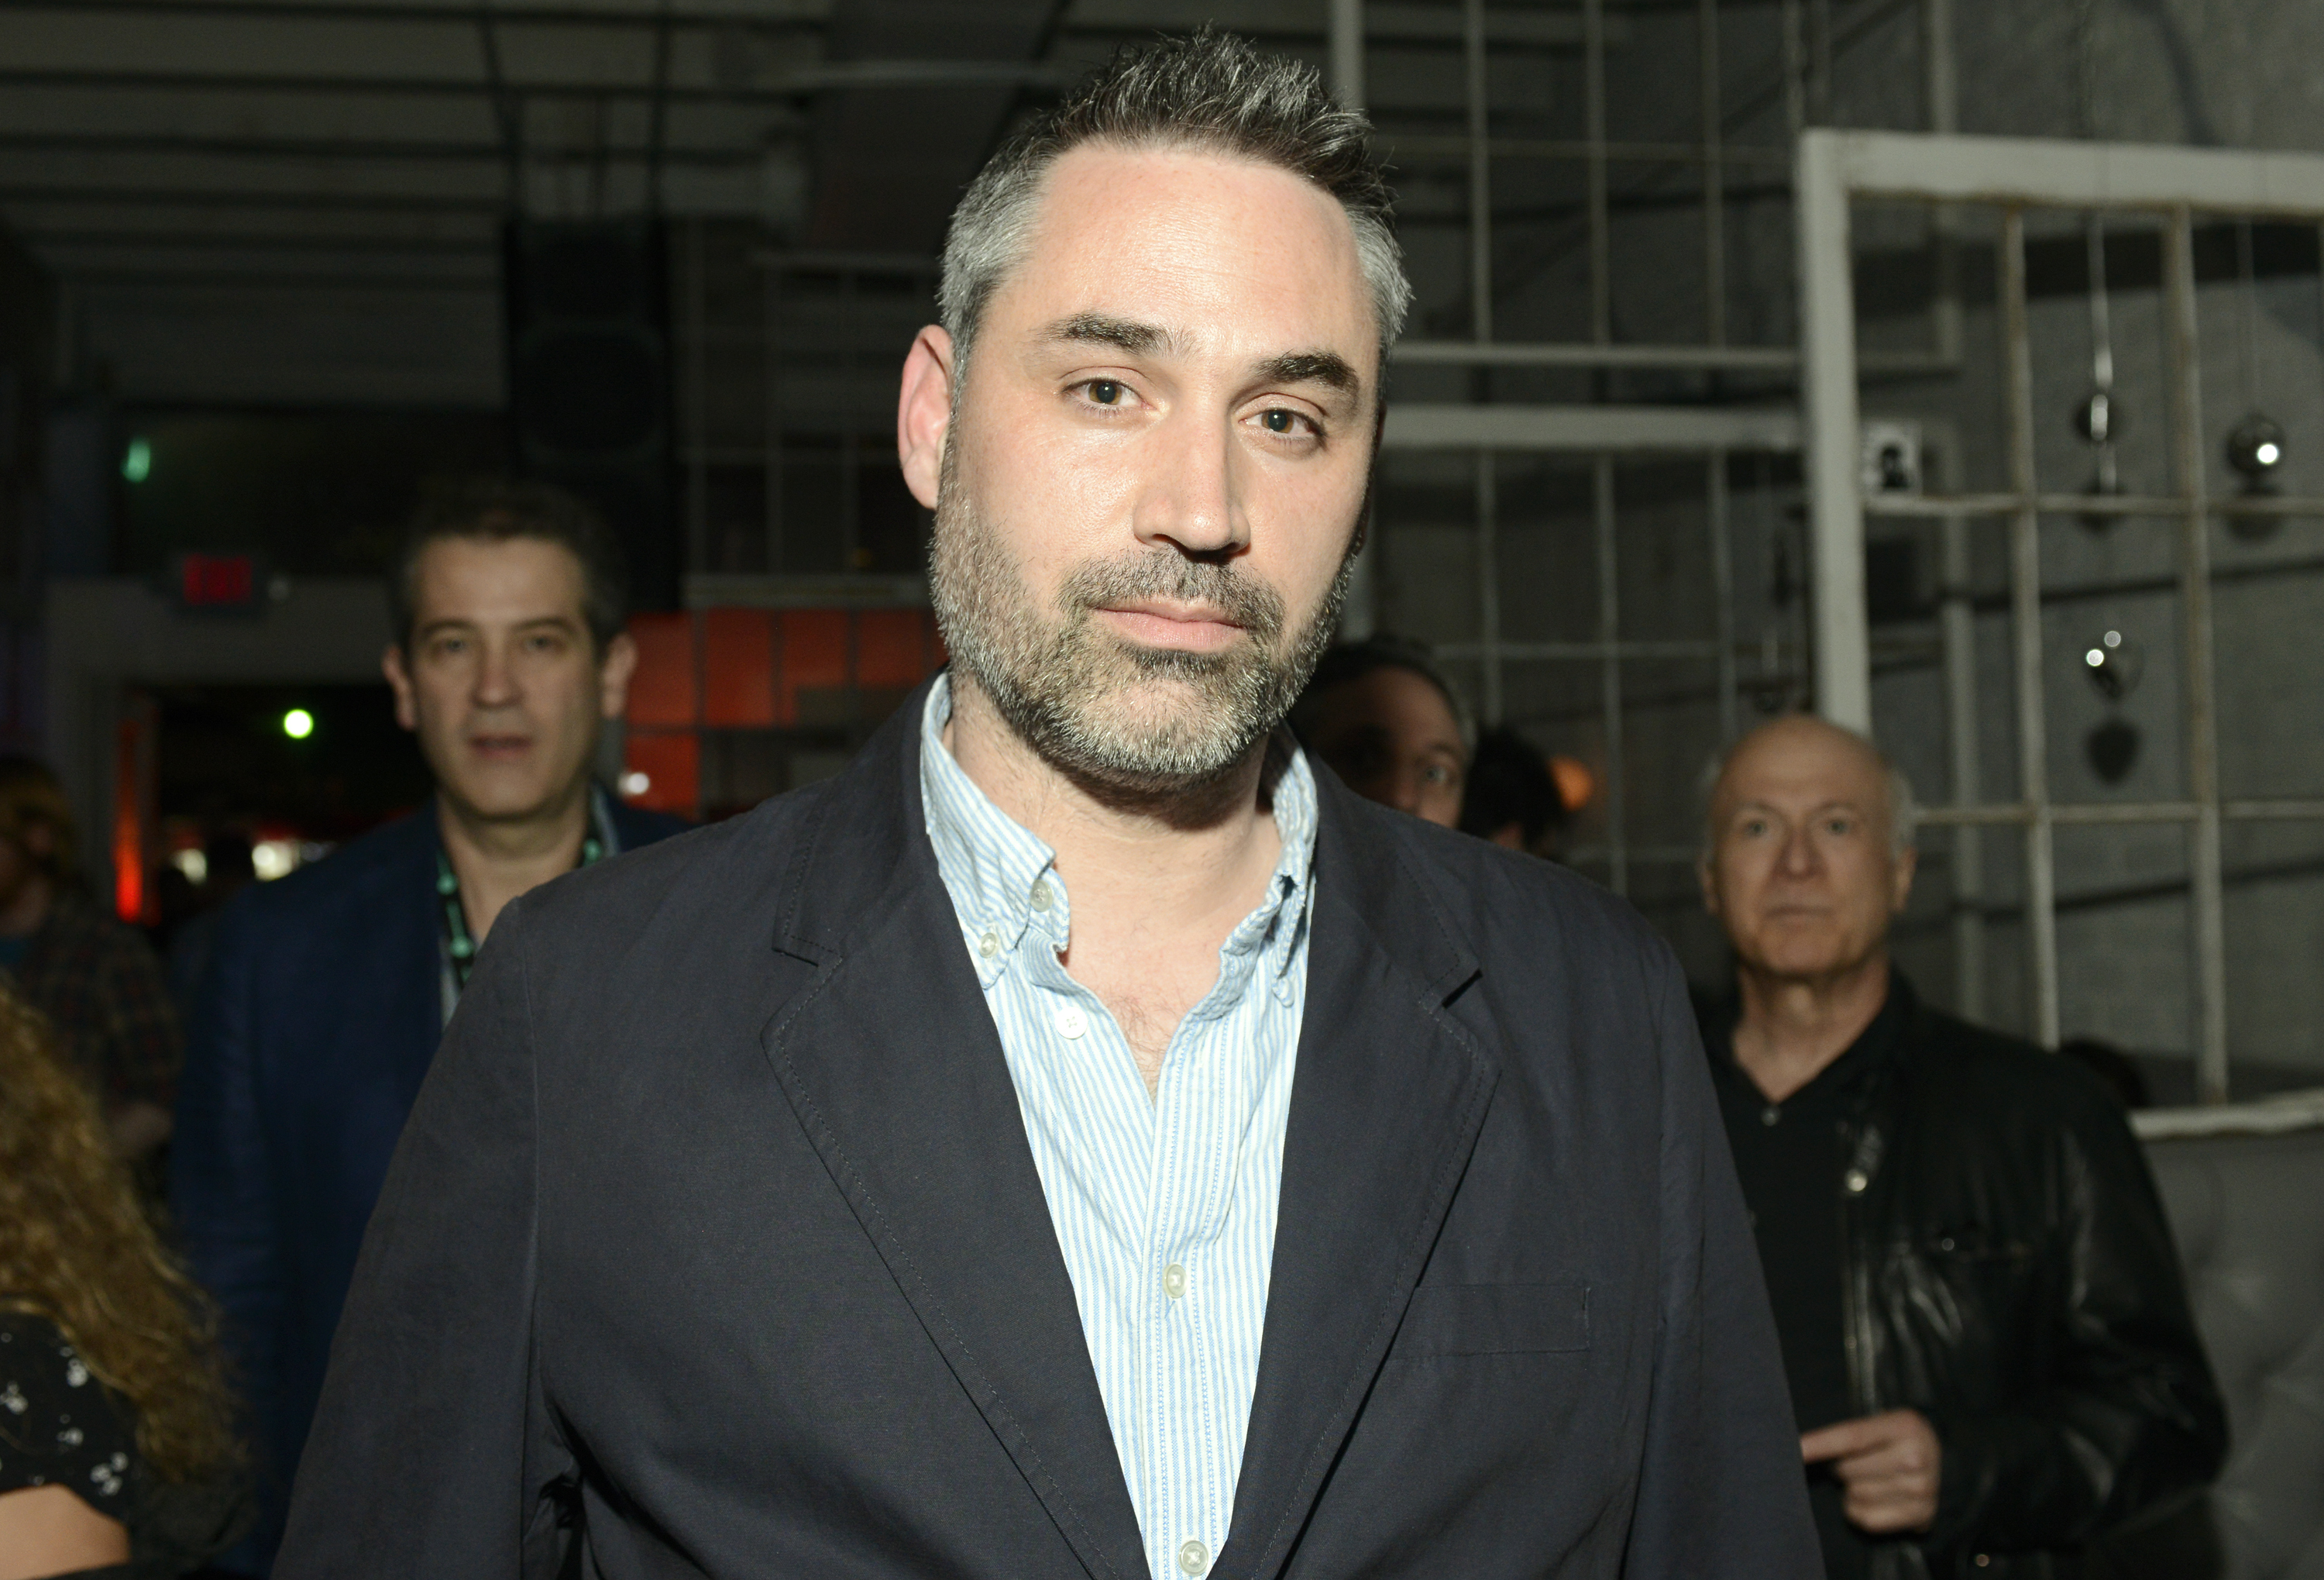 Alex Garland attends the SXSW  Ex Machina  Premiere Party at the Swan Dive nightclub on March 15, 2015 in Austin.